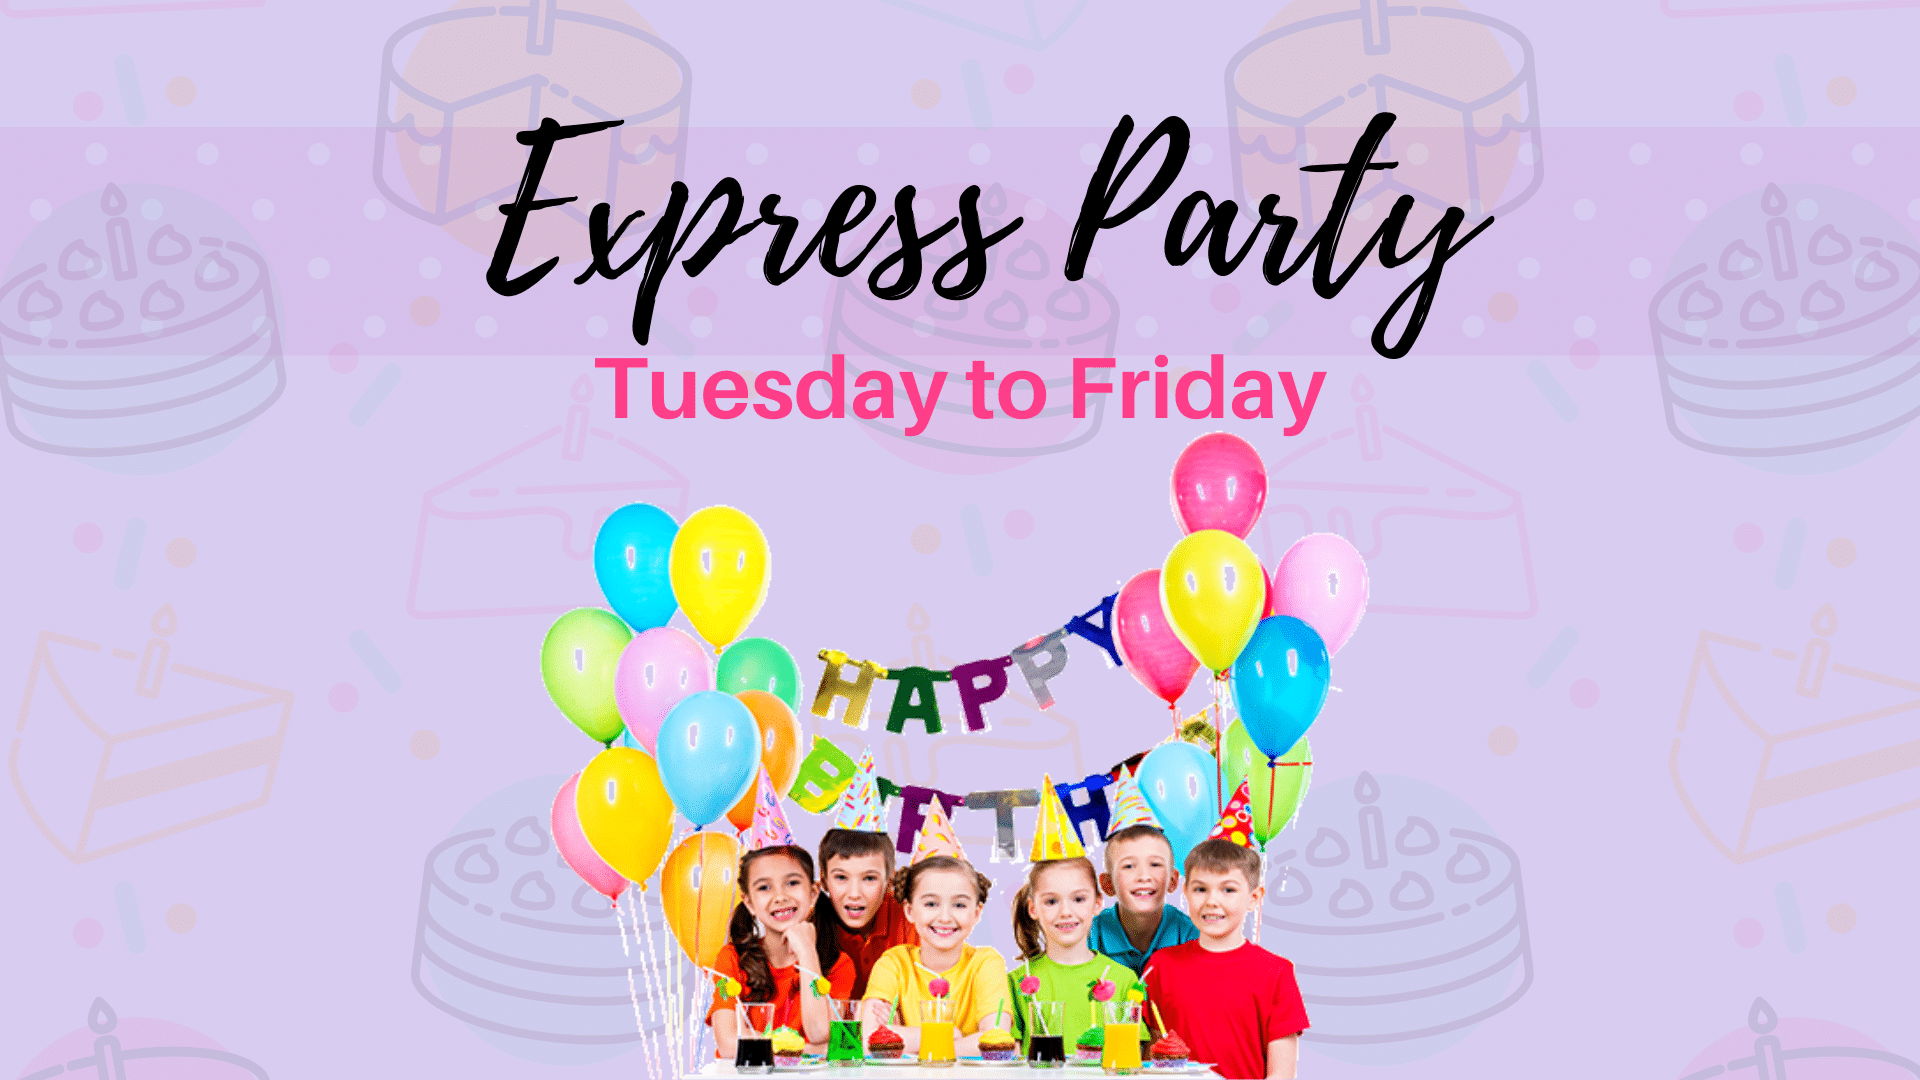 Express Party Revised